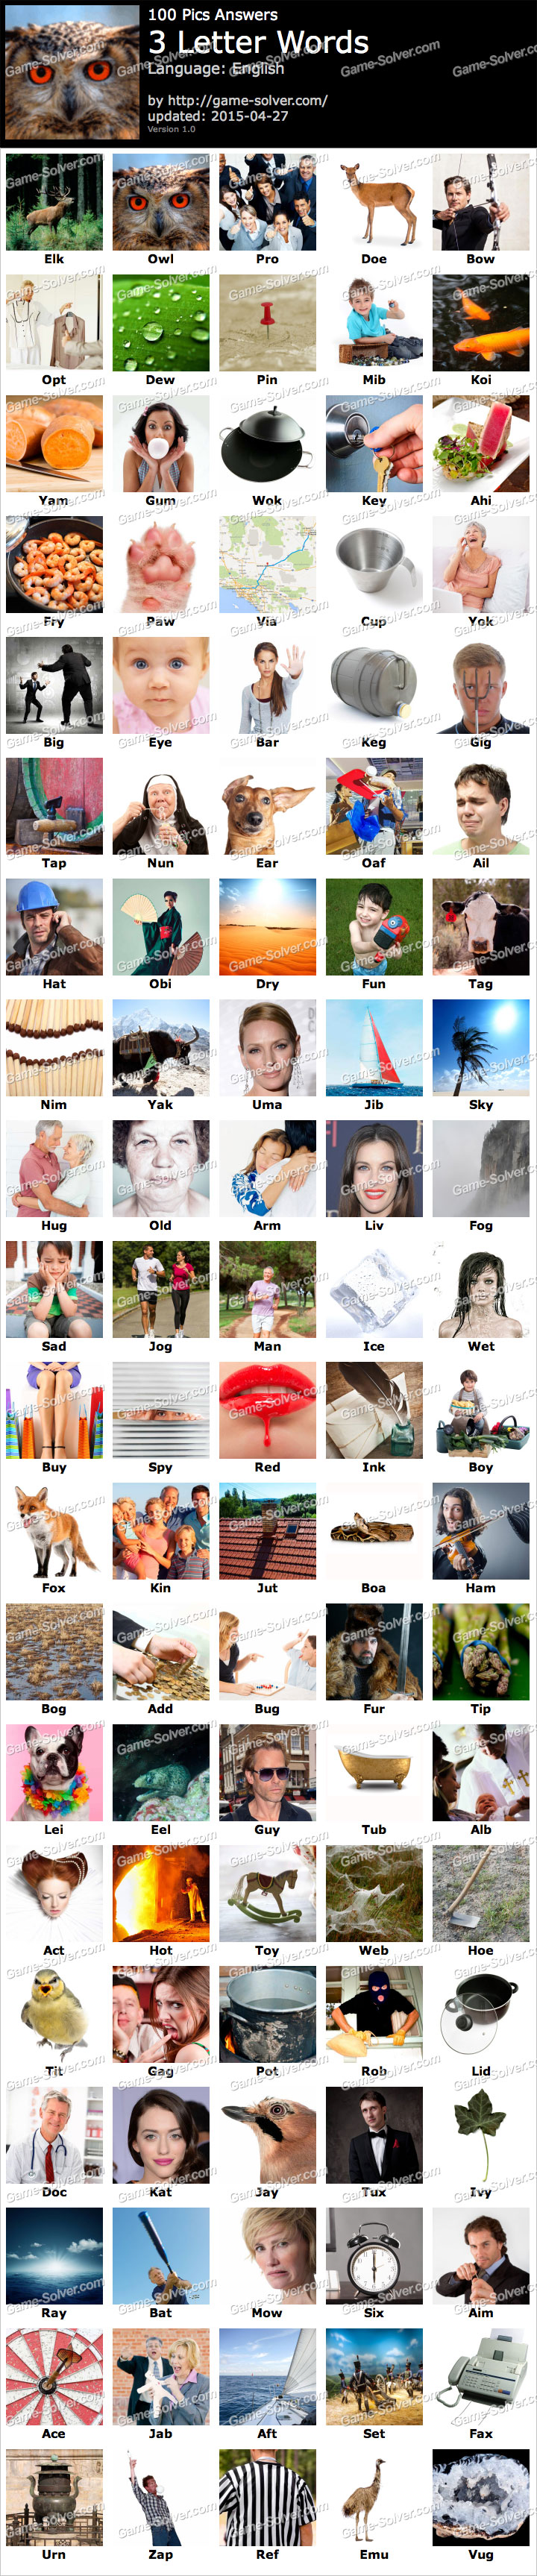 100 pics 3 letter words 100 pics 3 letter words solver 20004 | 100 Pics 3 Letter words 2015 04